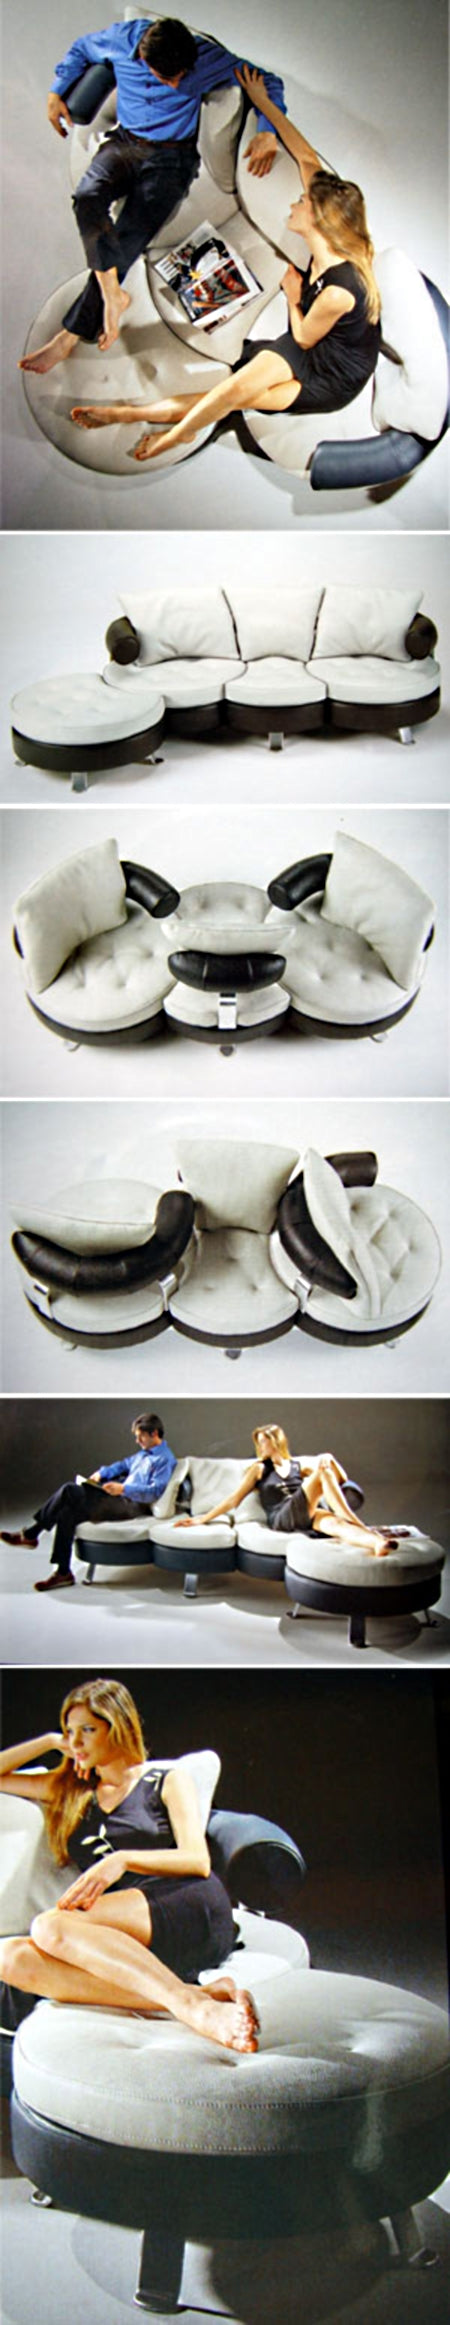 Original Sofa - italydesign.com